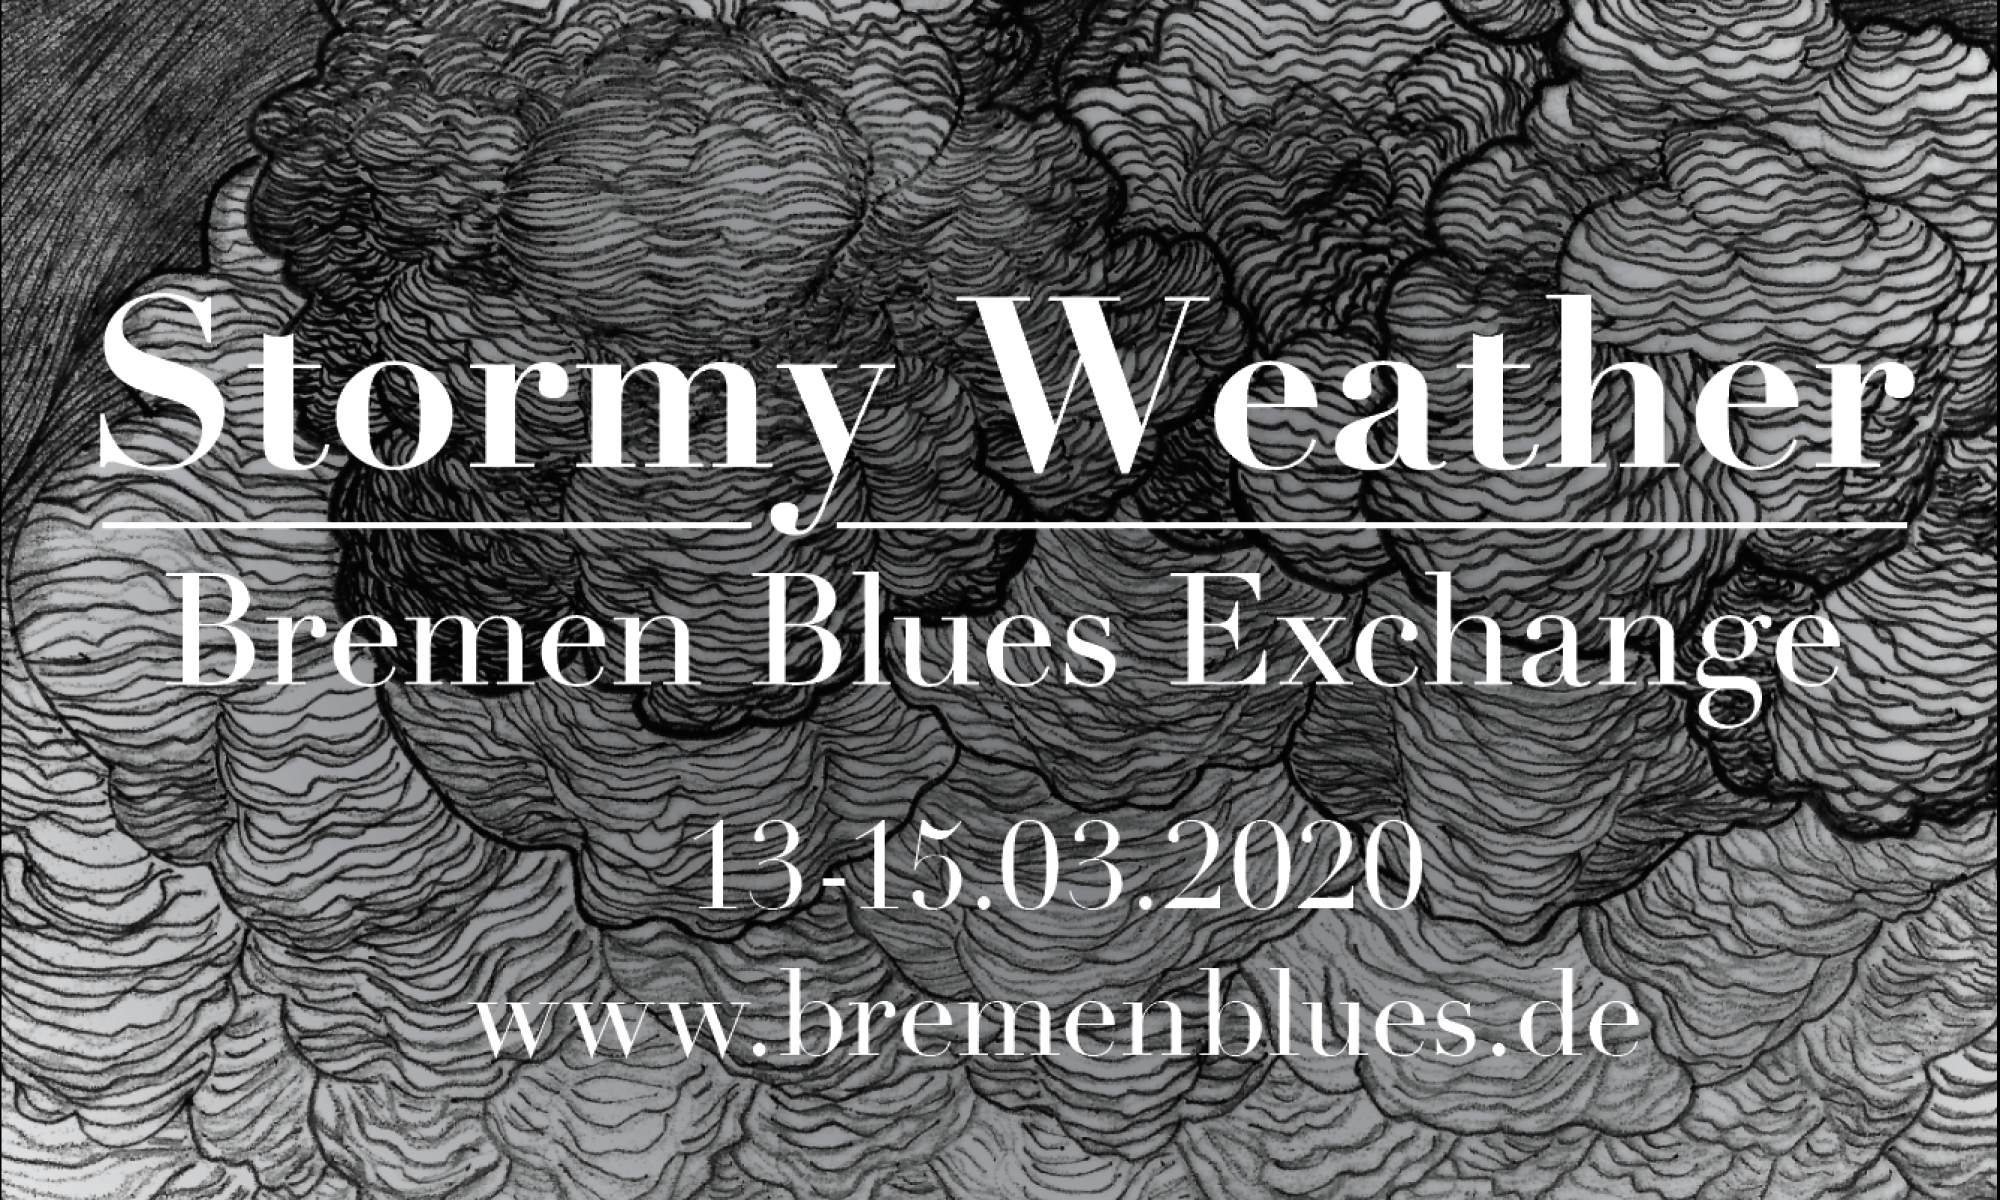 Stormy Weather - Bremen Blues Exchange